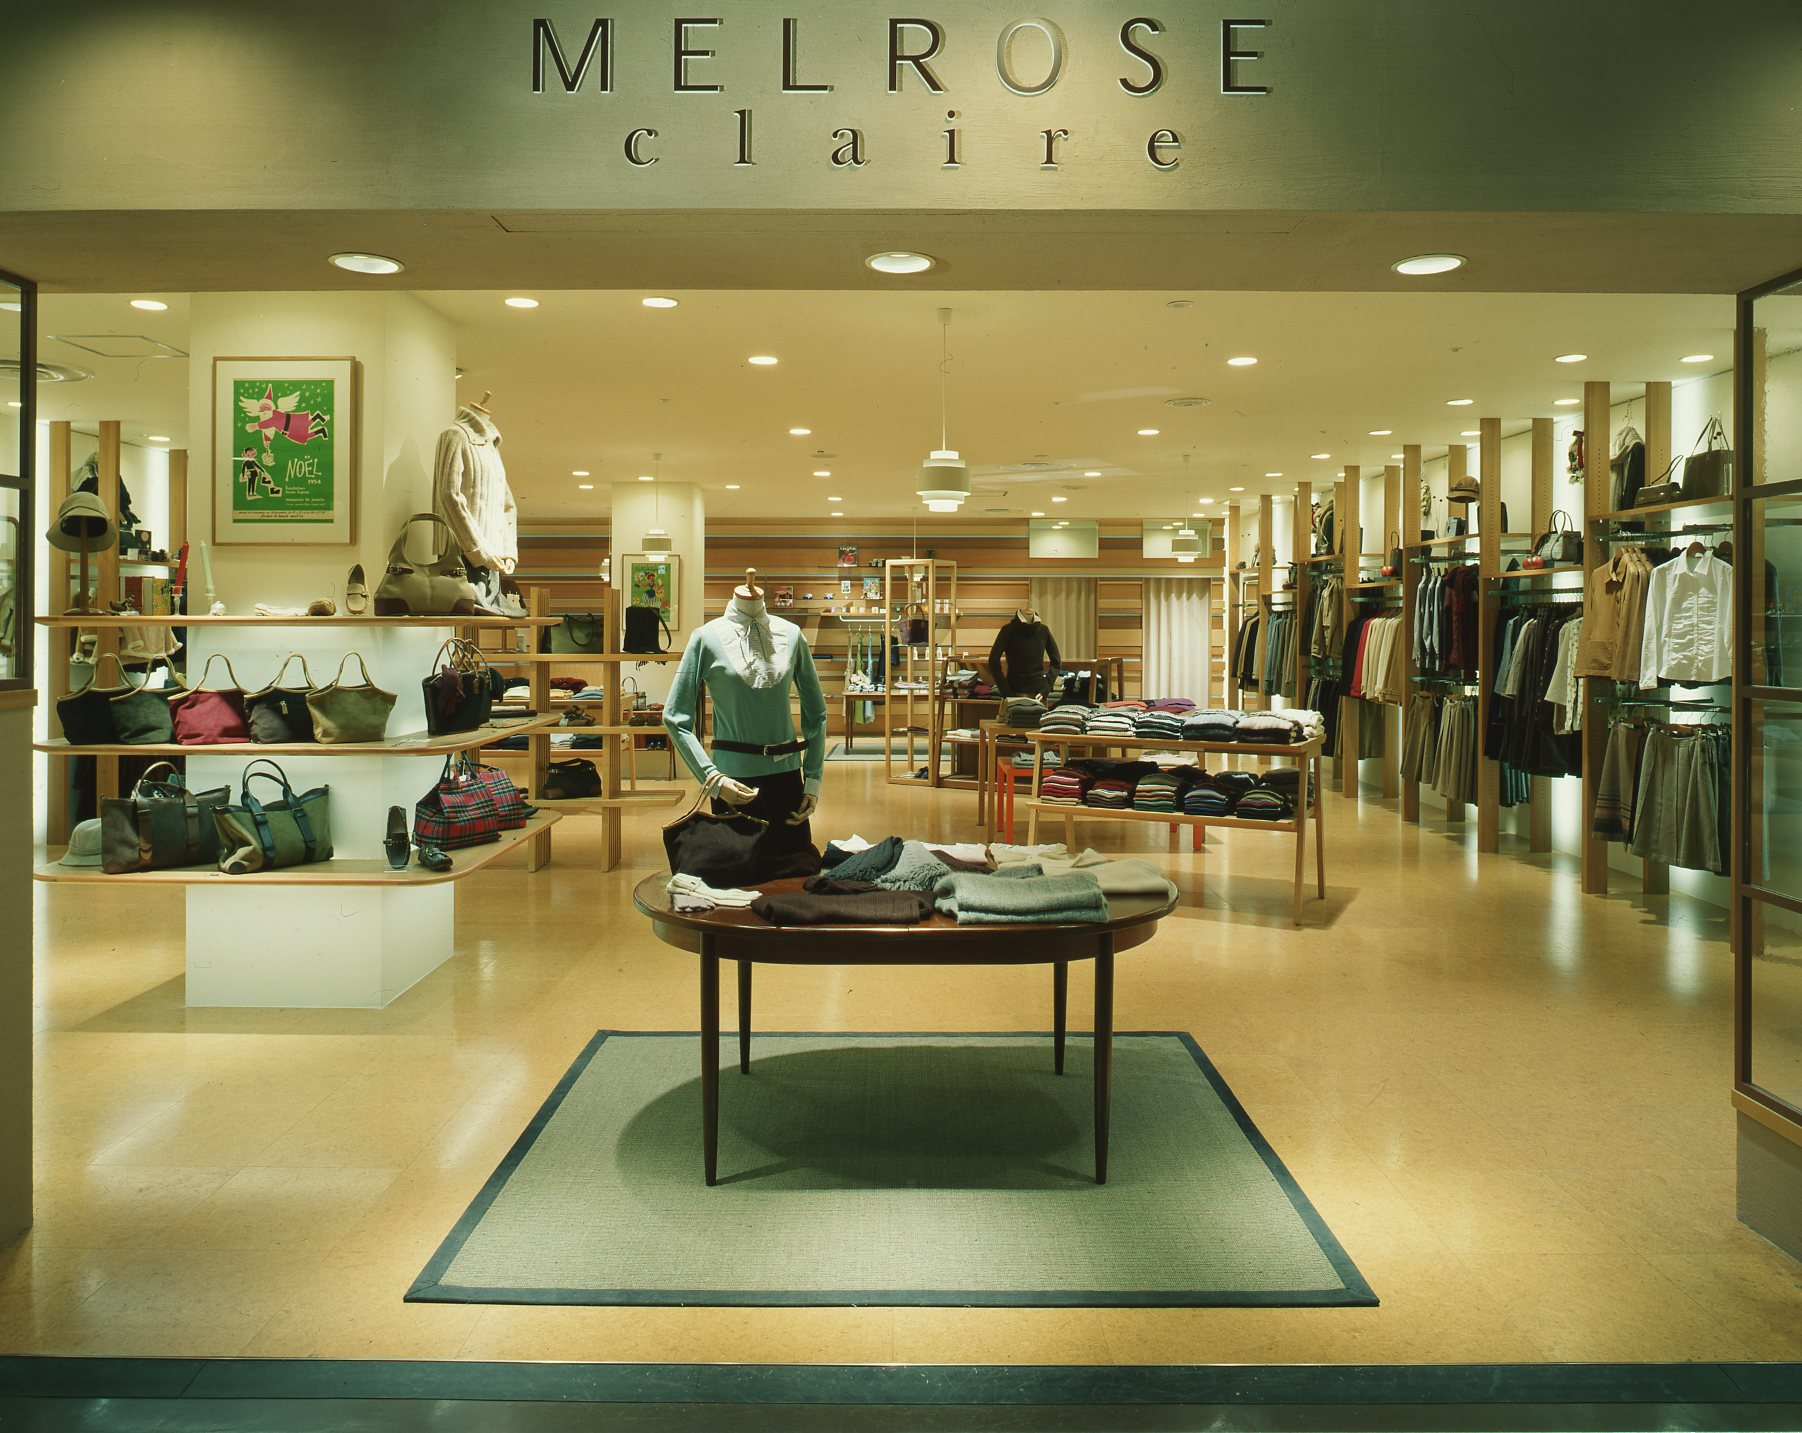 MELROSE claire